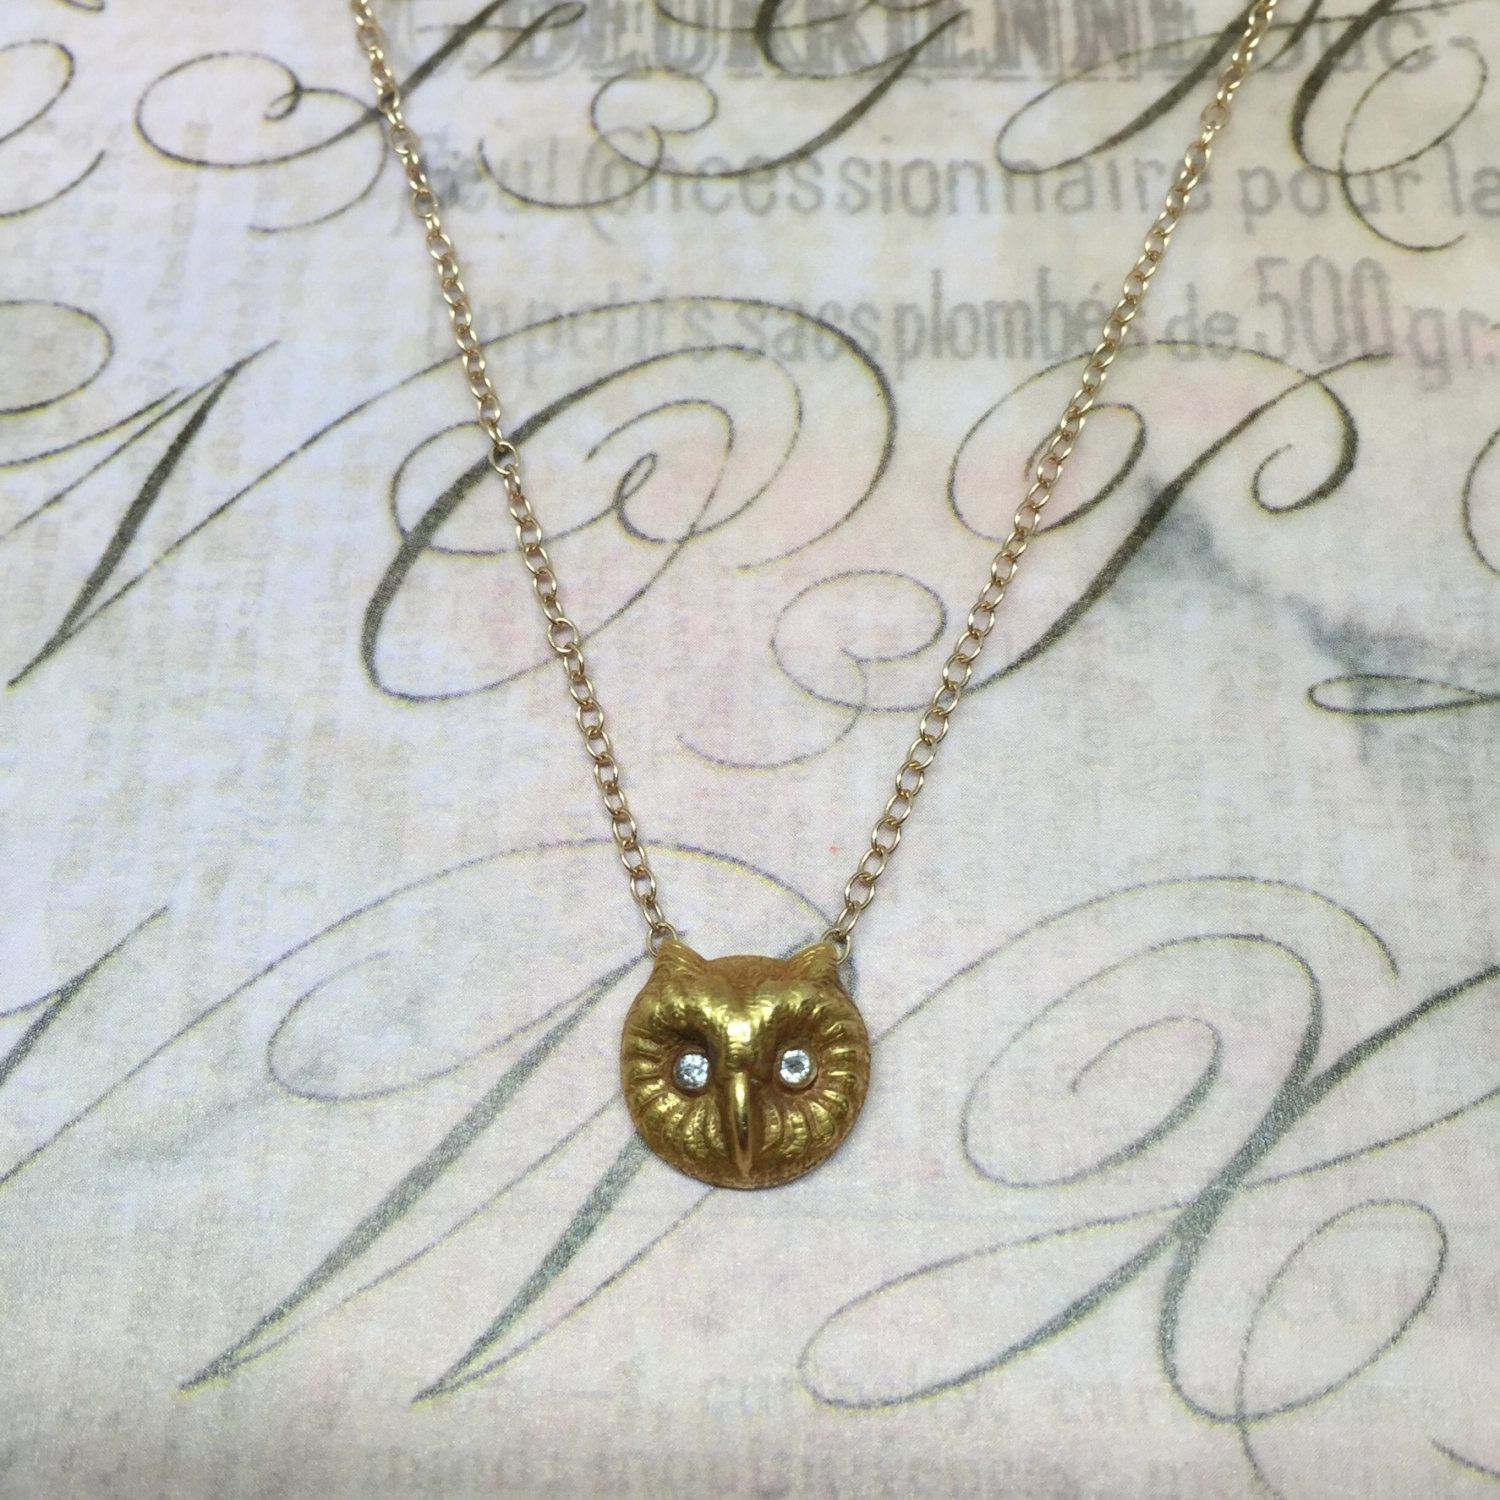 Antique 14k Victorian Owl Necklace with Diamond Eyes by DaintyBySky on Etsy